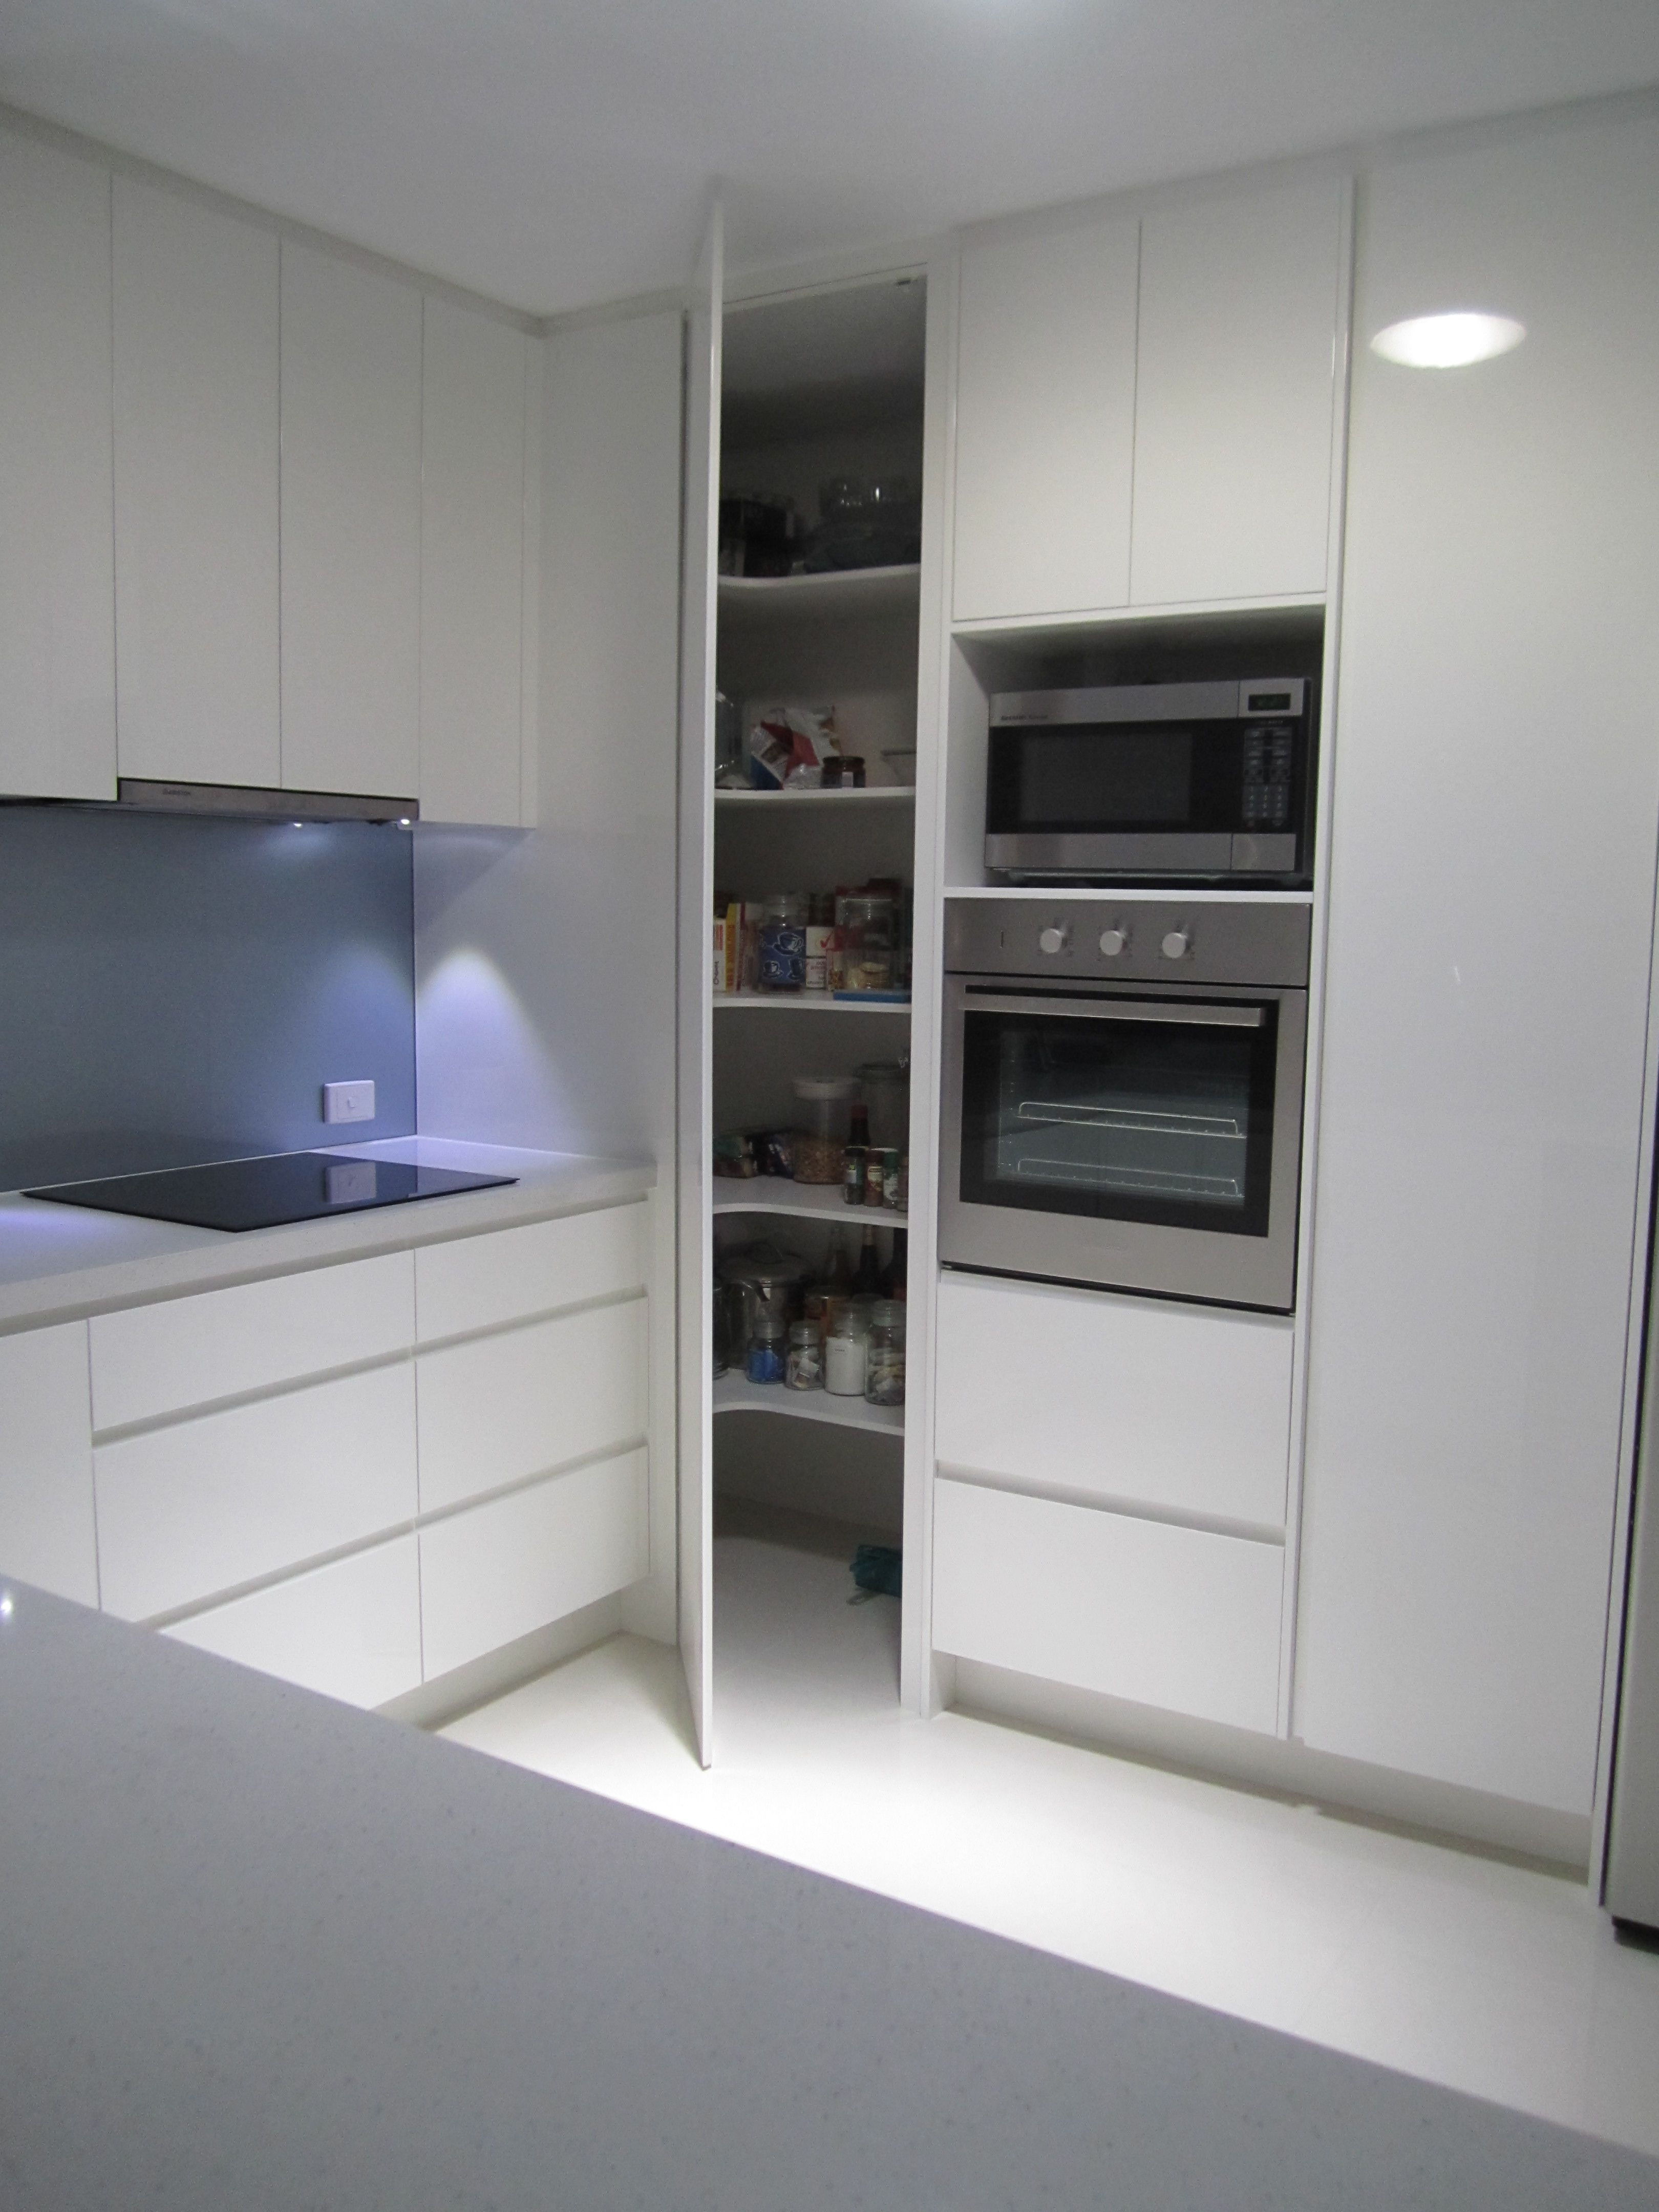 Two Ovens In Vertical Alignment With Pantry Door Alongside